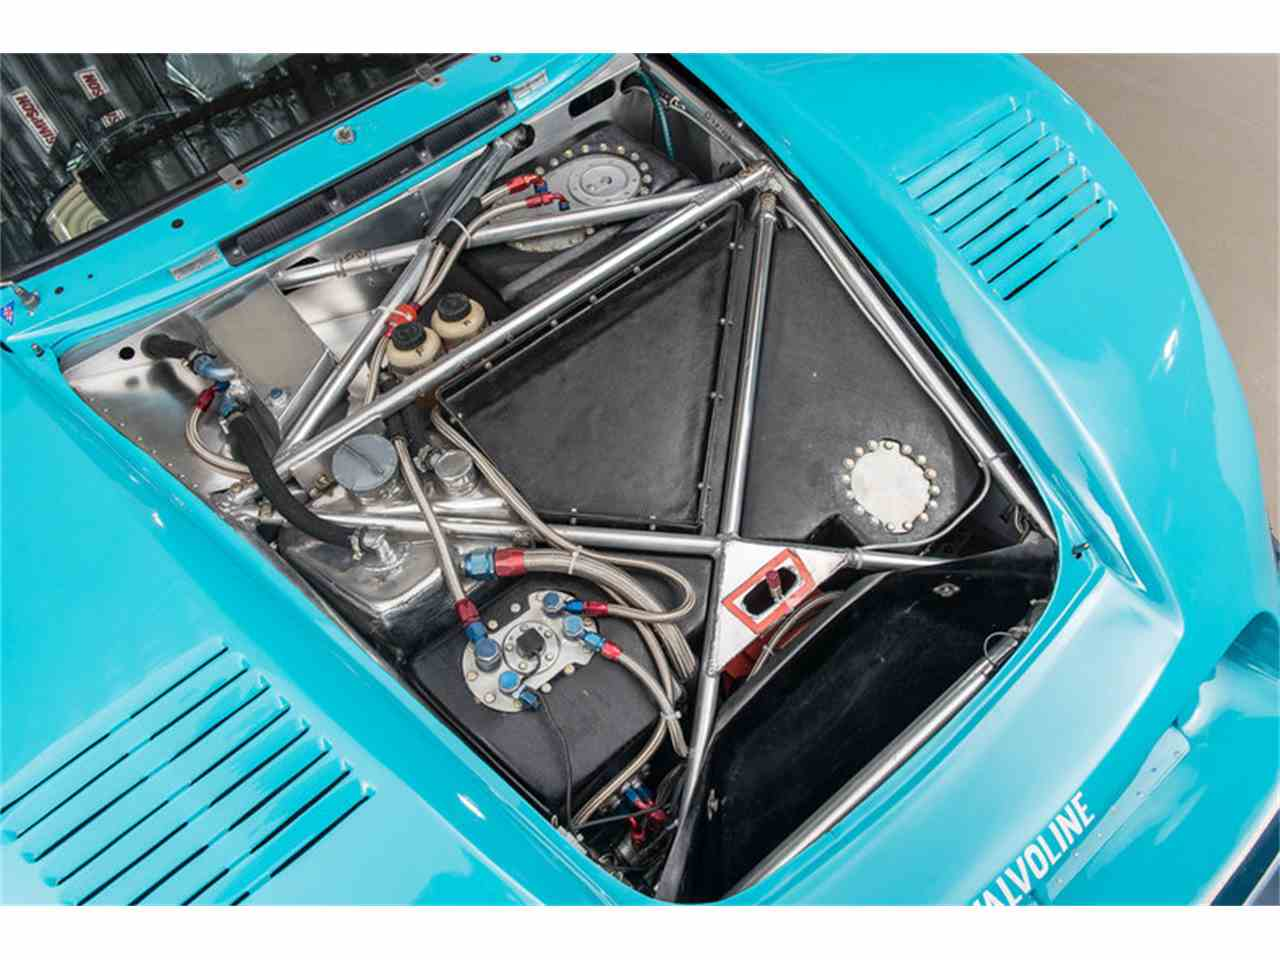 Large Picture of 1981 Porsche 935 K4 Auction Vehicle Offered by Canepa - GQ9Y